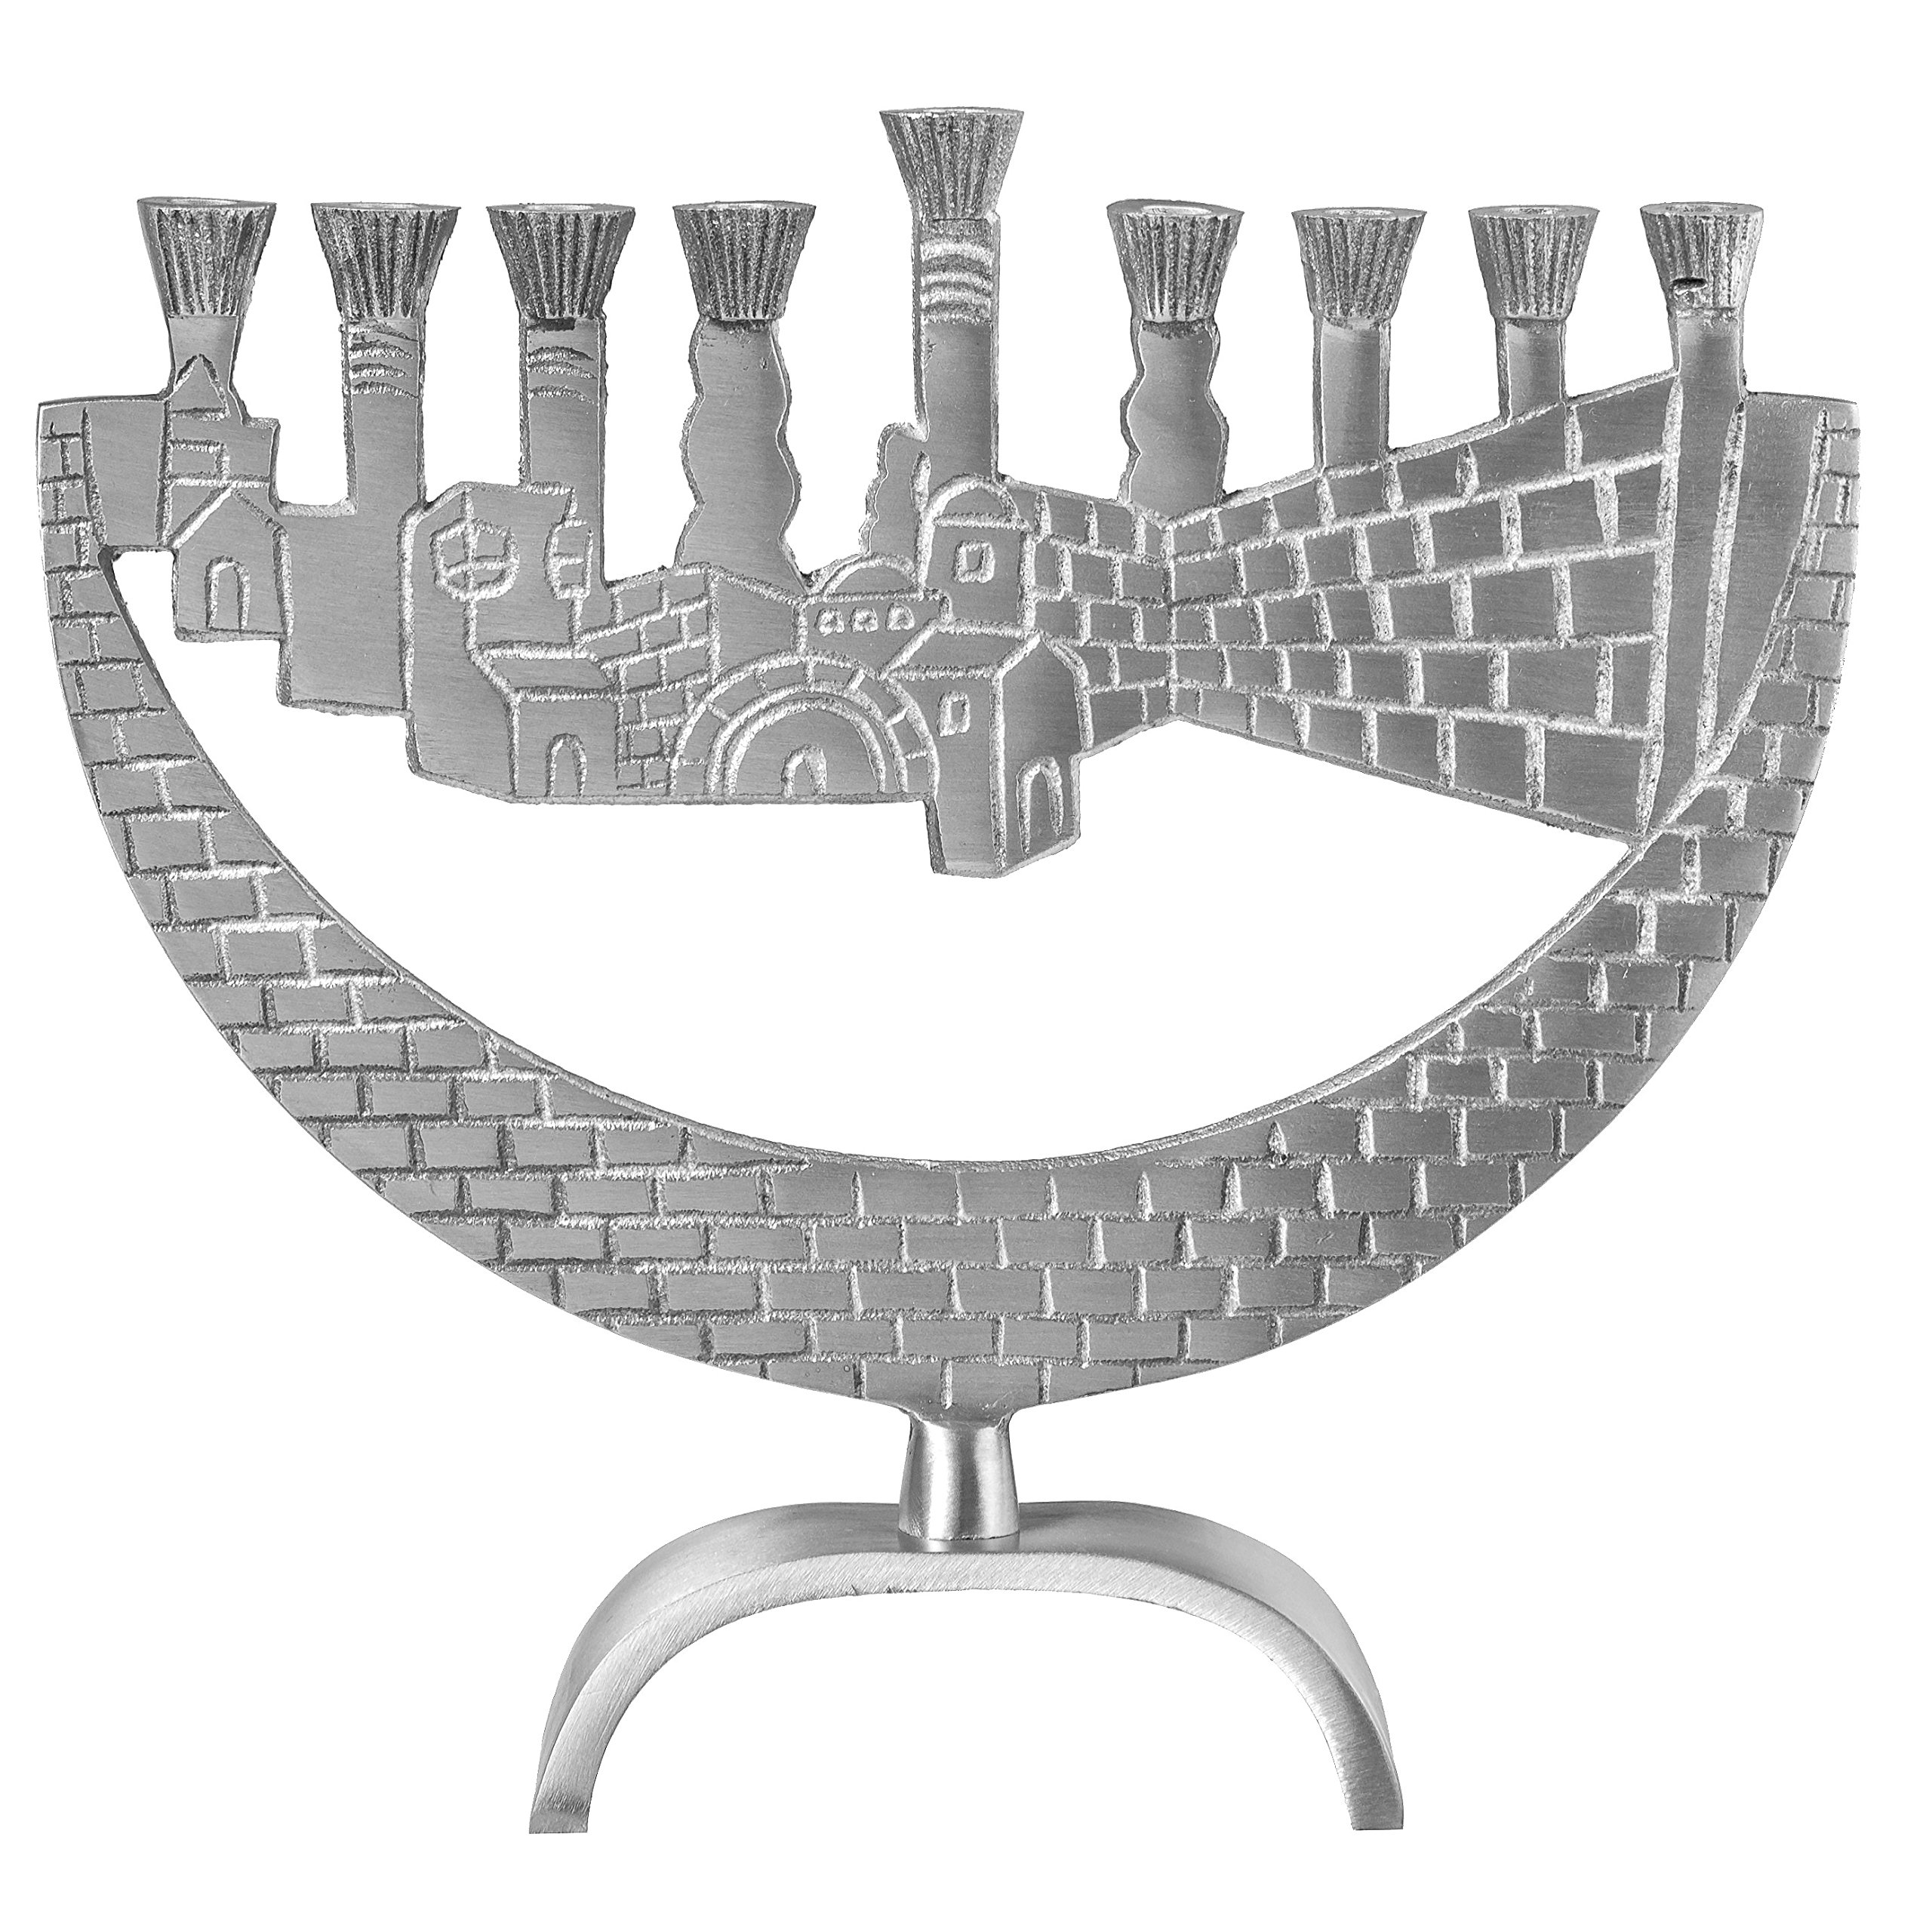 Ner Mitzvah Artistic Aluminum Candle Menorah - Fits All Standard Chanukah Candles - Jerusalem and Western Wall Design